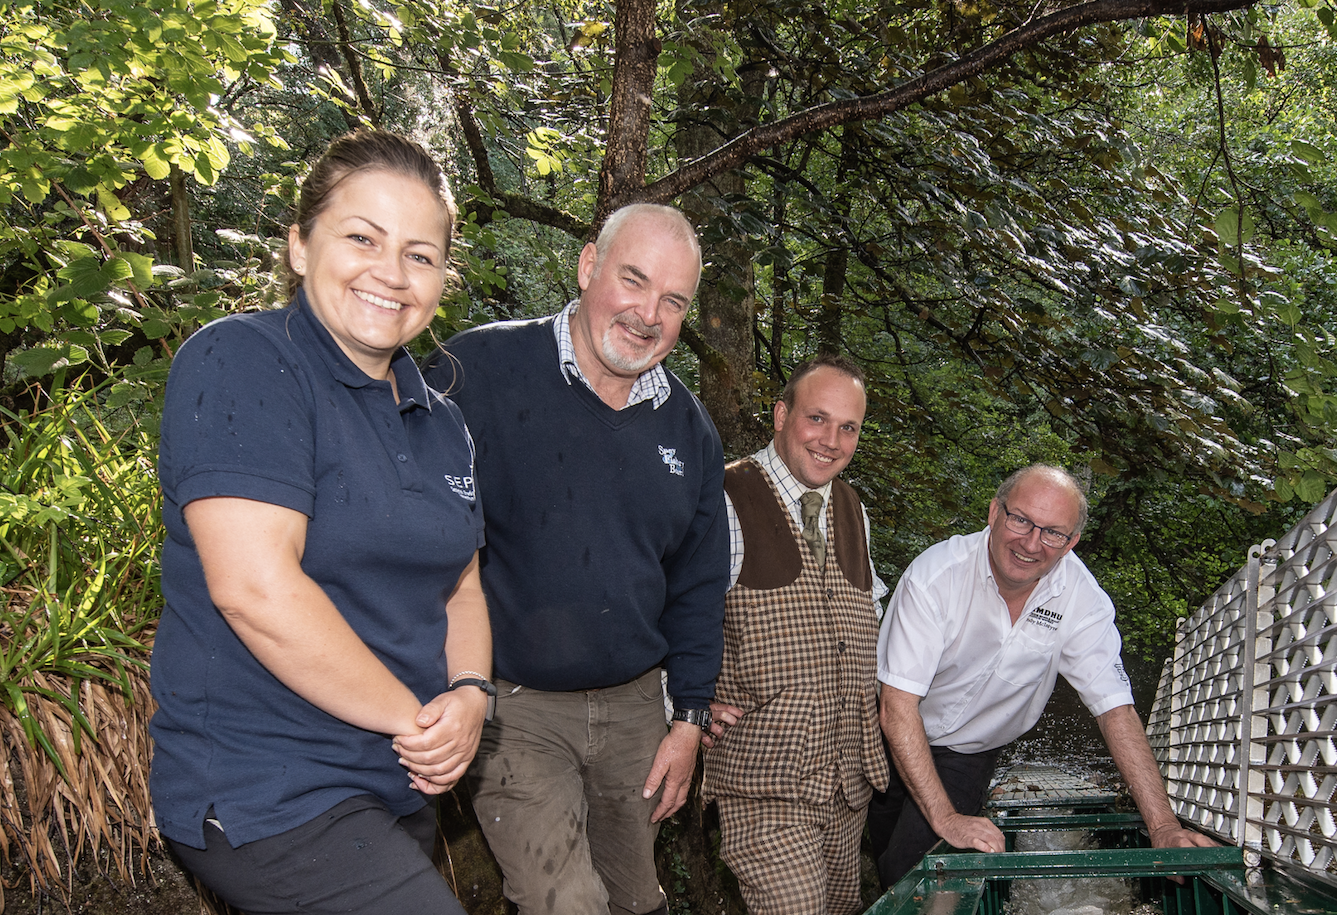 Efforts From Speyside Distillery To Open Up Burn To Fish Wins Award Nomination photo